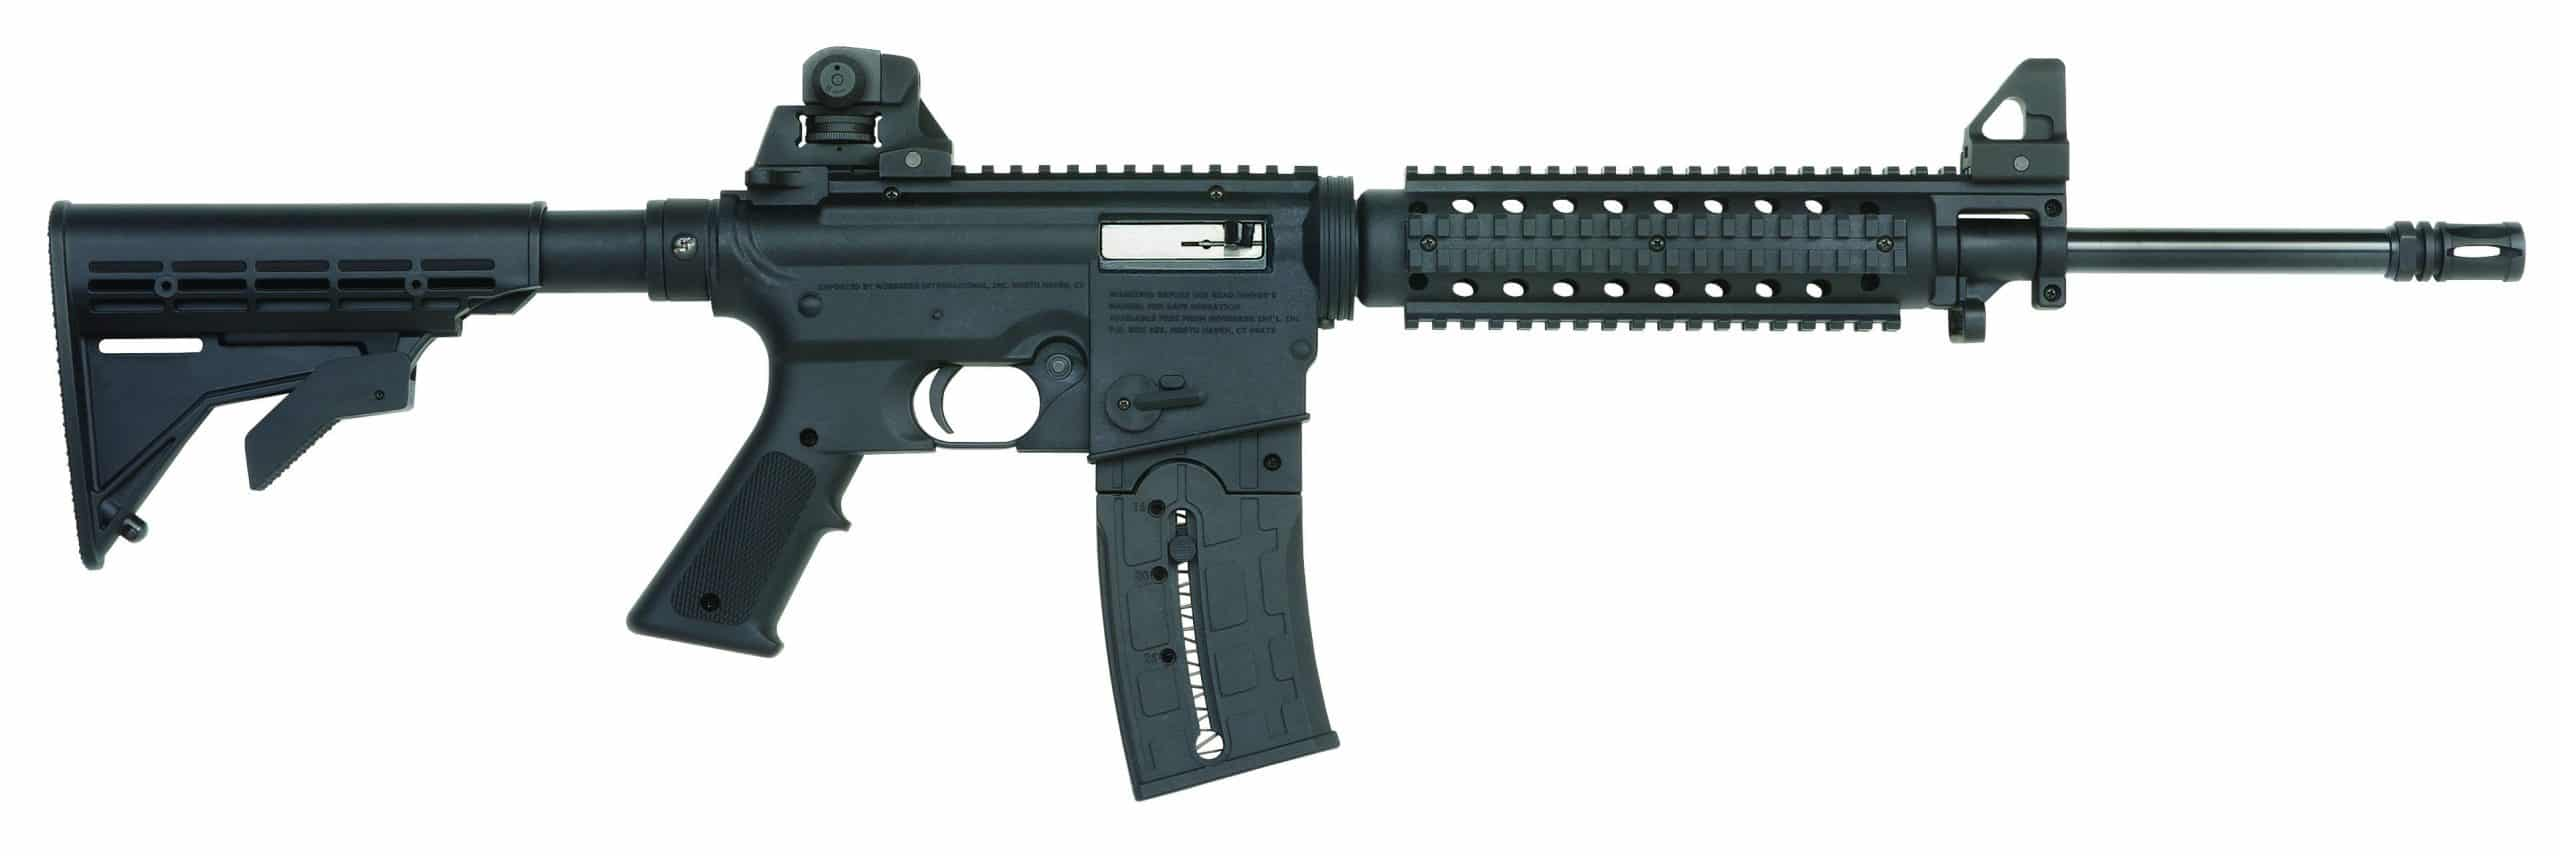 image of Mossberg 715 Tactical